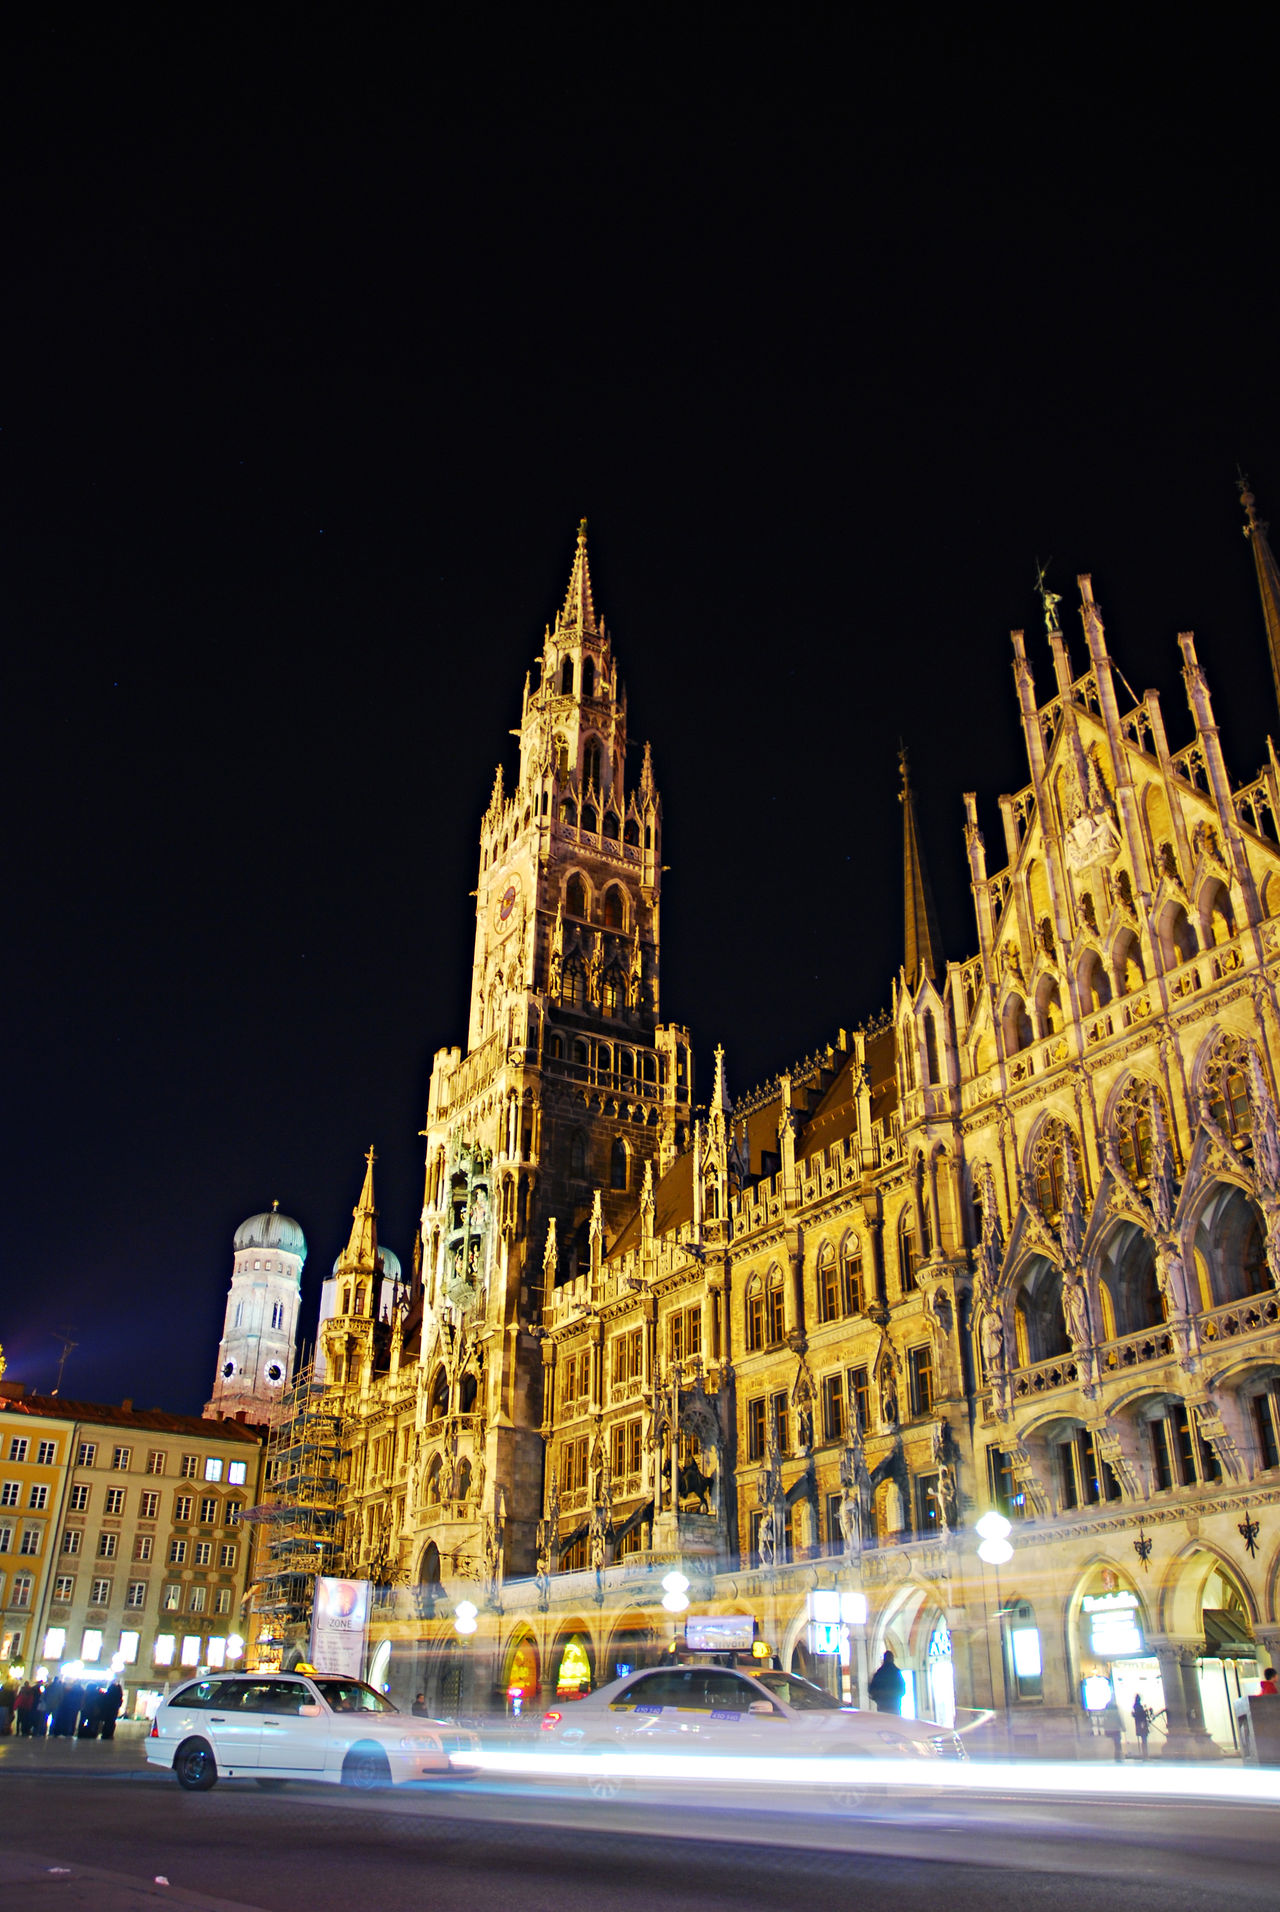 #Marienplatz #münchen  Architecture Building Exterior Built Structure Capital Cities  City City Life City Street Illuminated Land Vehicle Mode Of Transport Night No People Outdoors Parking Sky Tall - High Tourism Travel Destinations